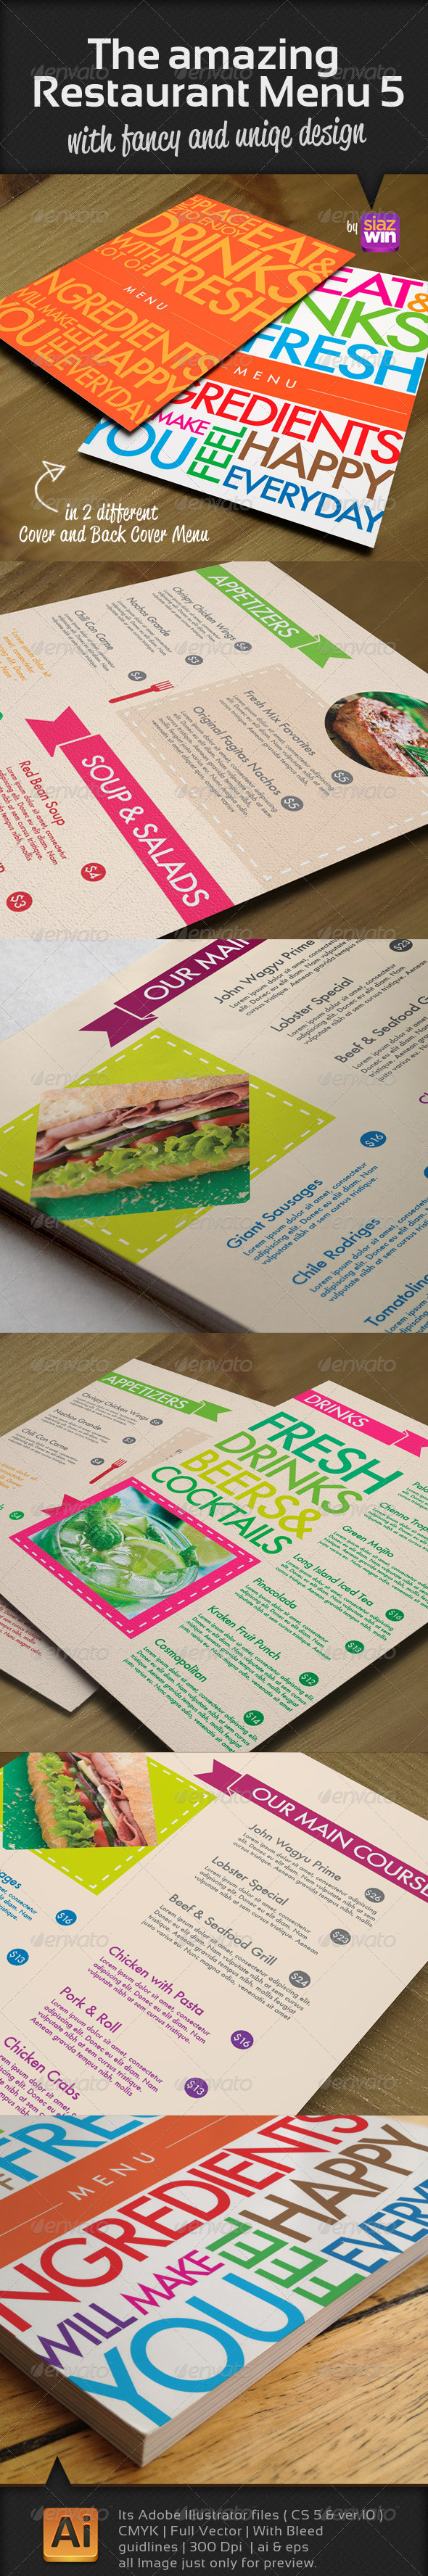 GraphicRiver The Amazing Restaurant Menu 5 4234162